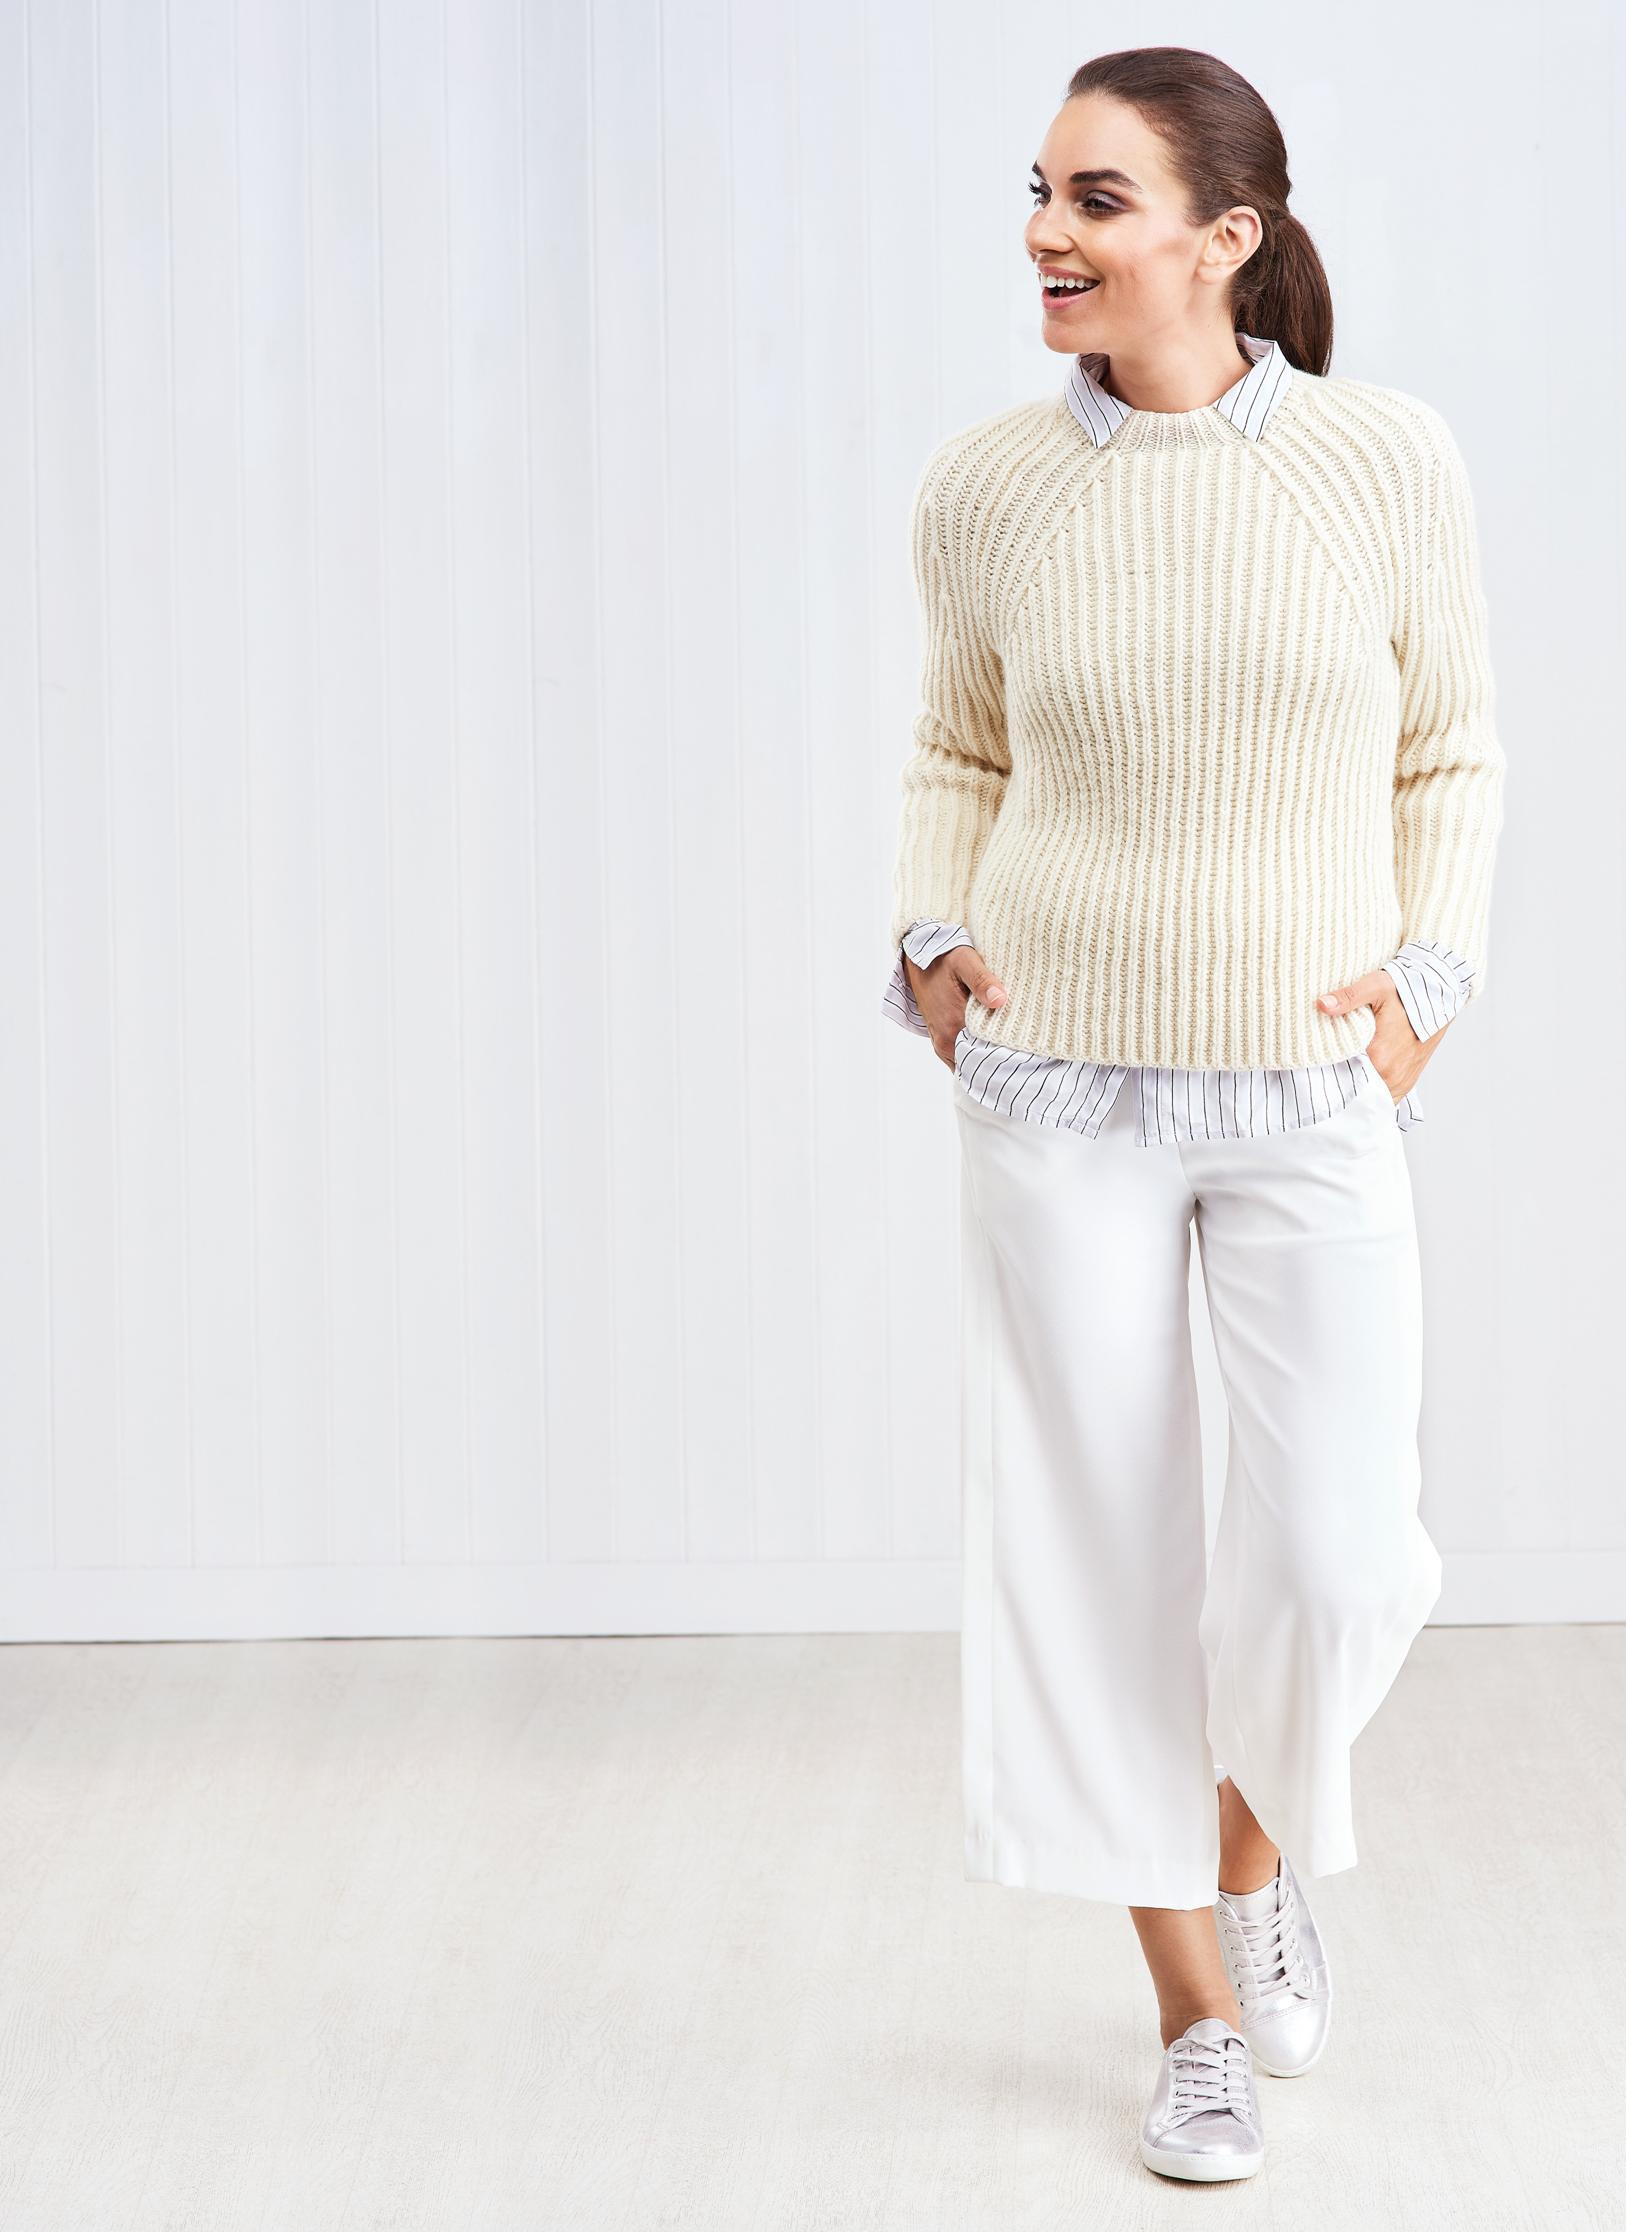 Fisherman's Rib Sweater | Knitting Patterns | Let's Knit ...